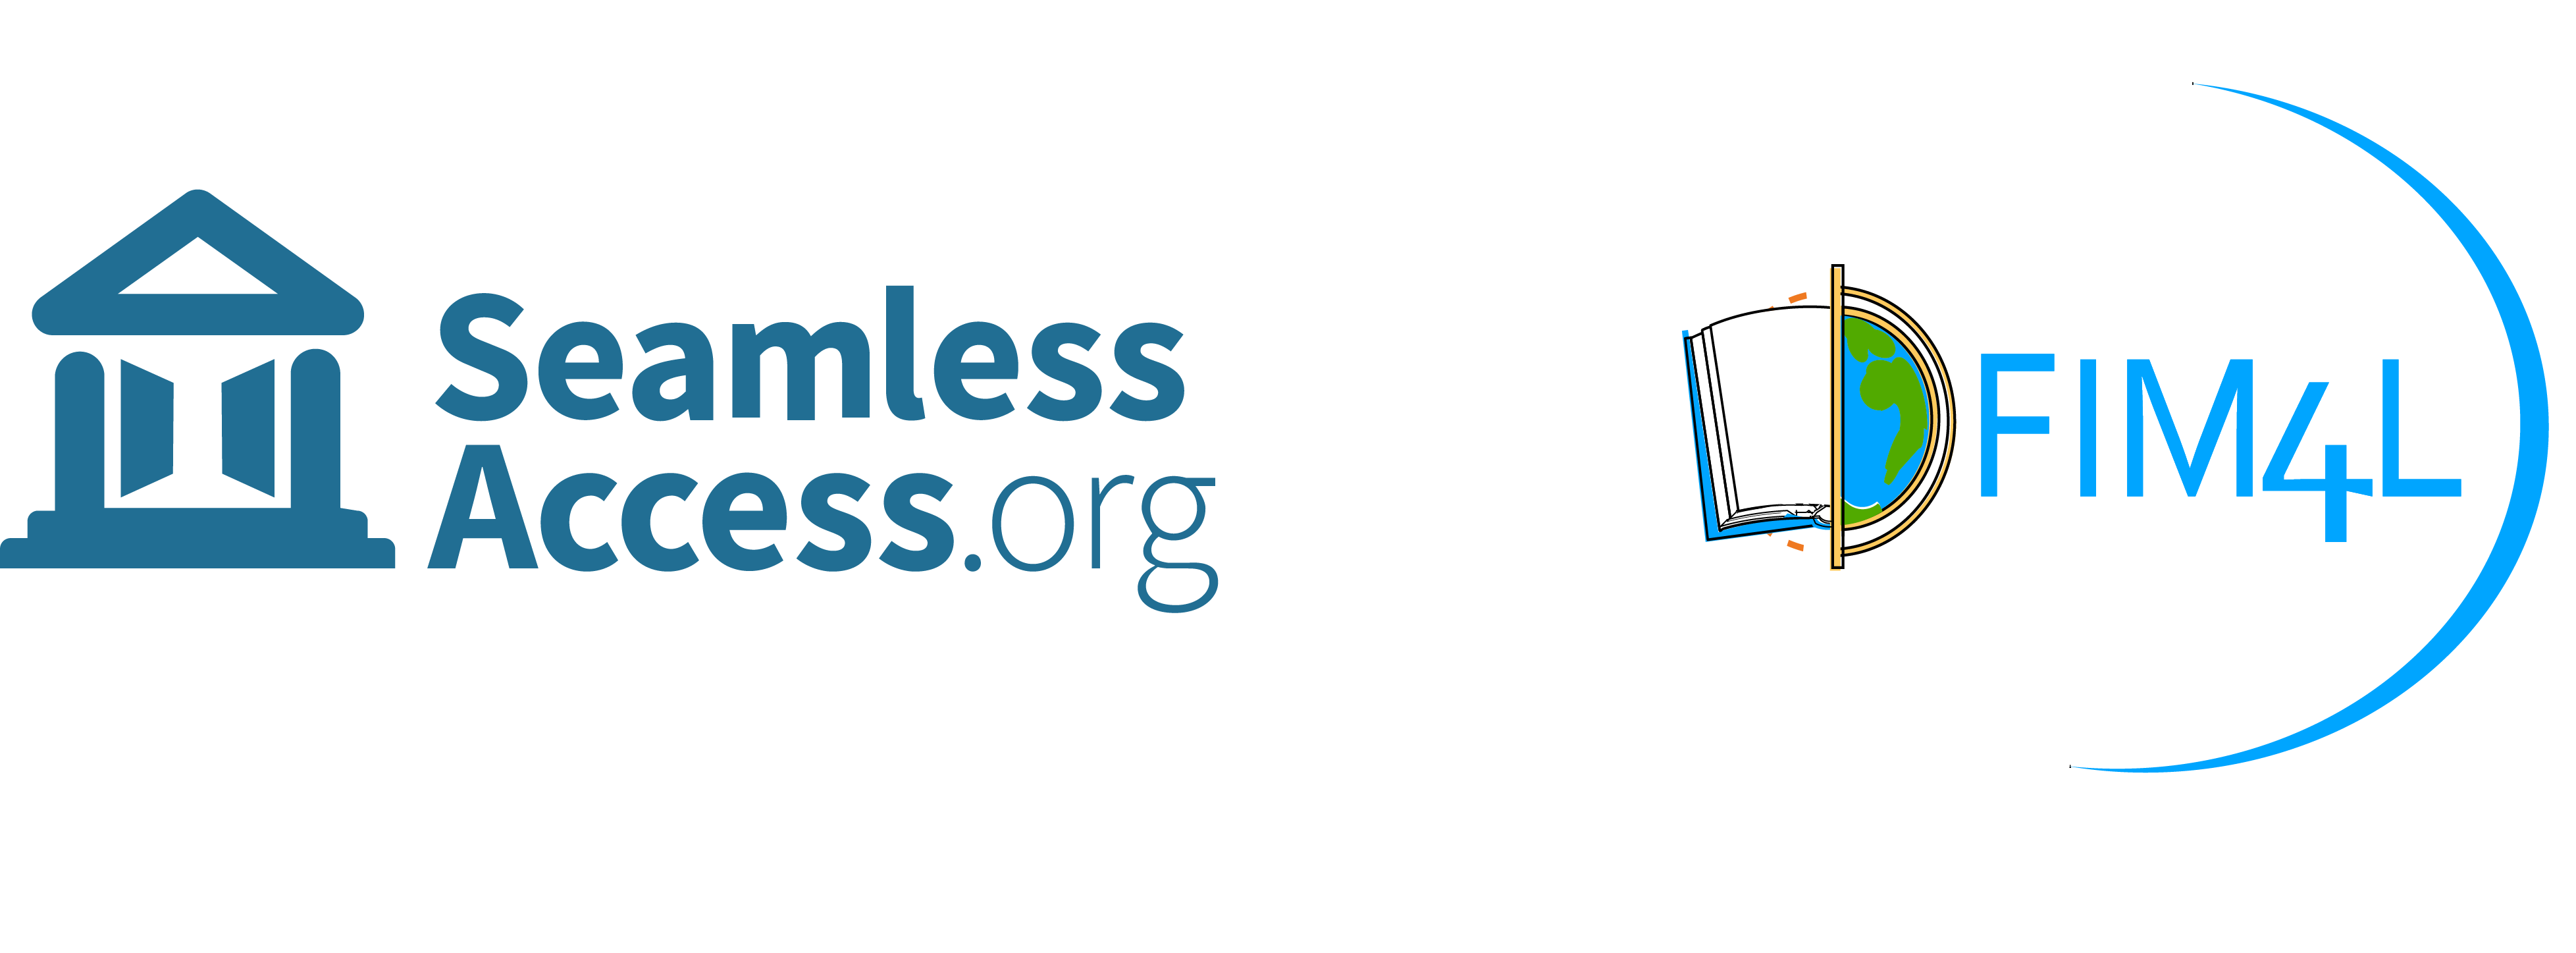 Logos (from left to right): SeamlessAccess.org and FIM4L